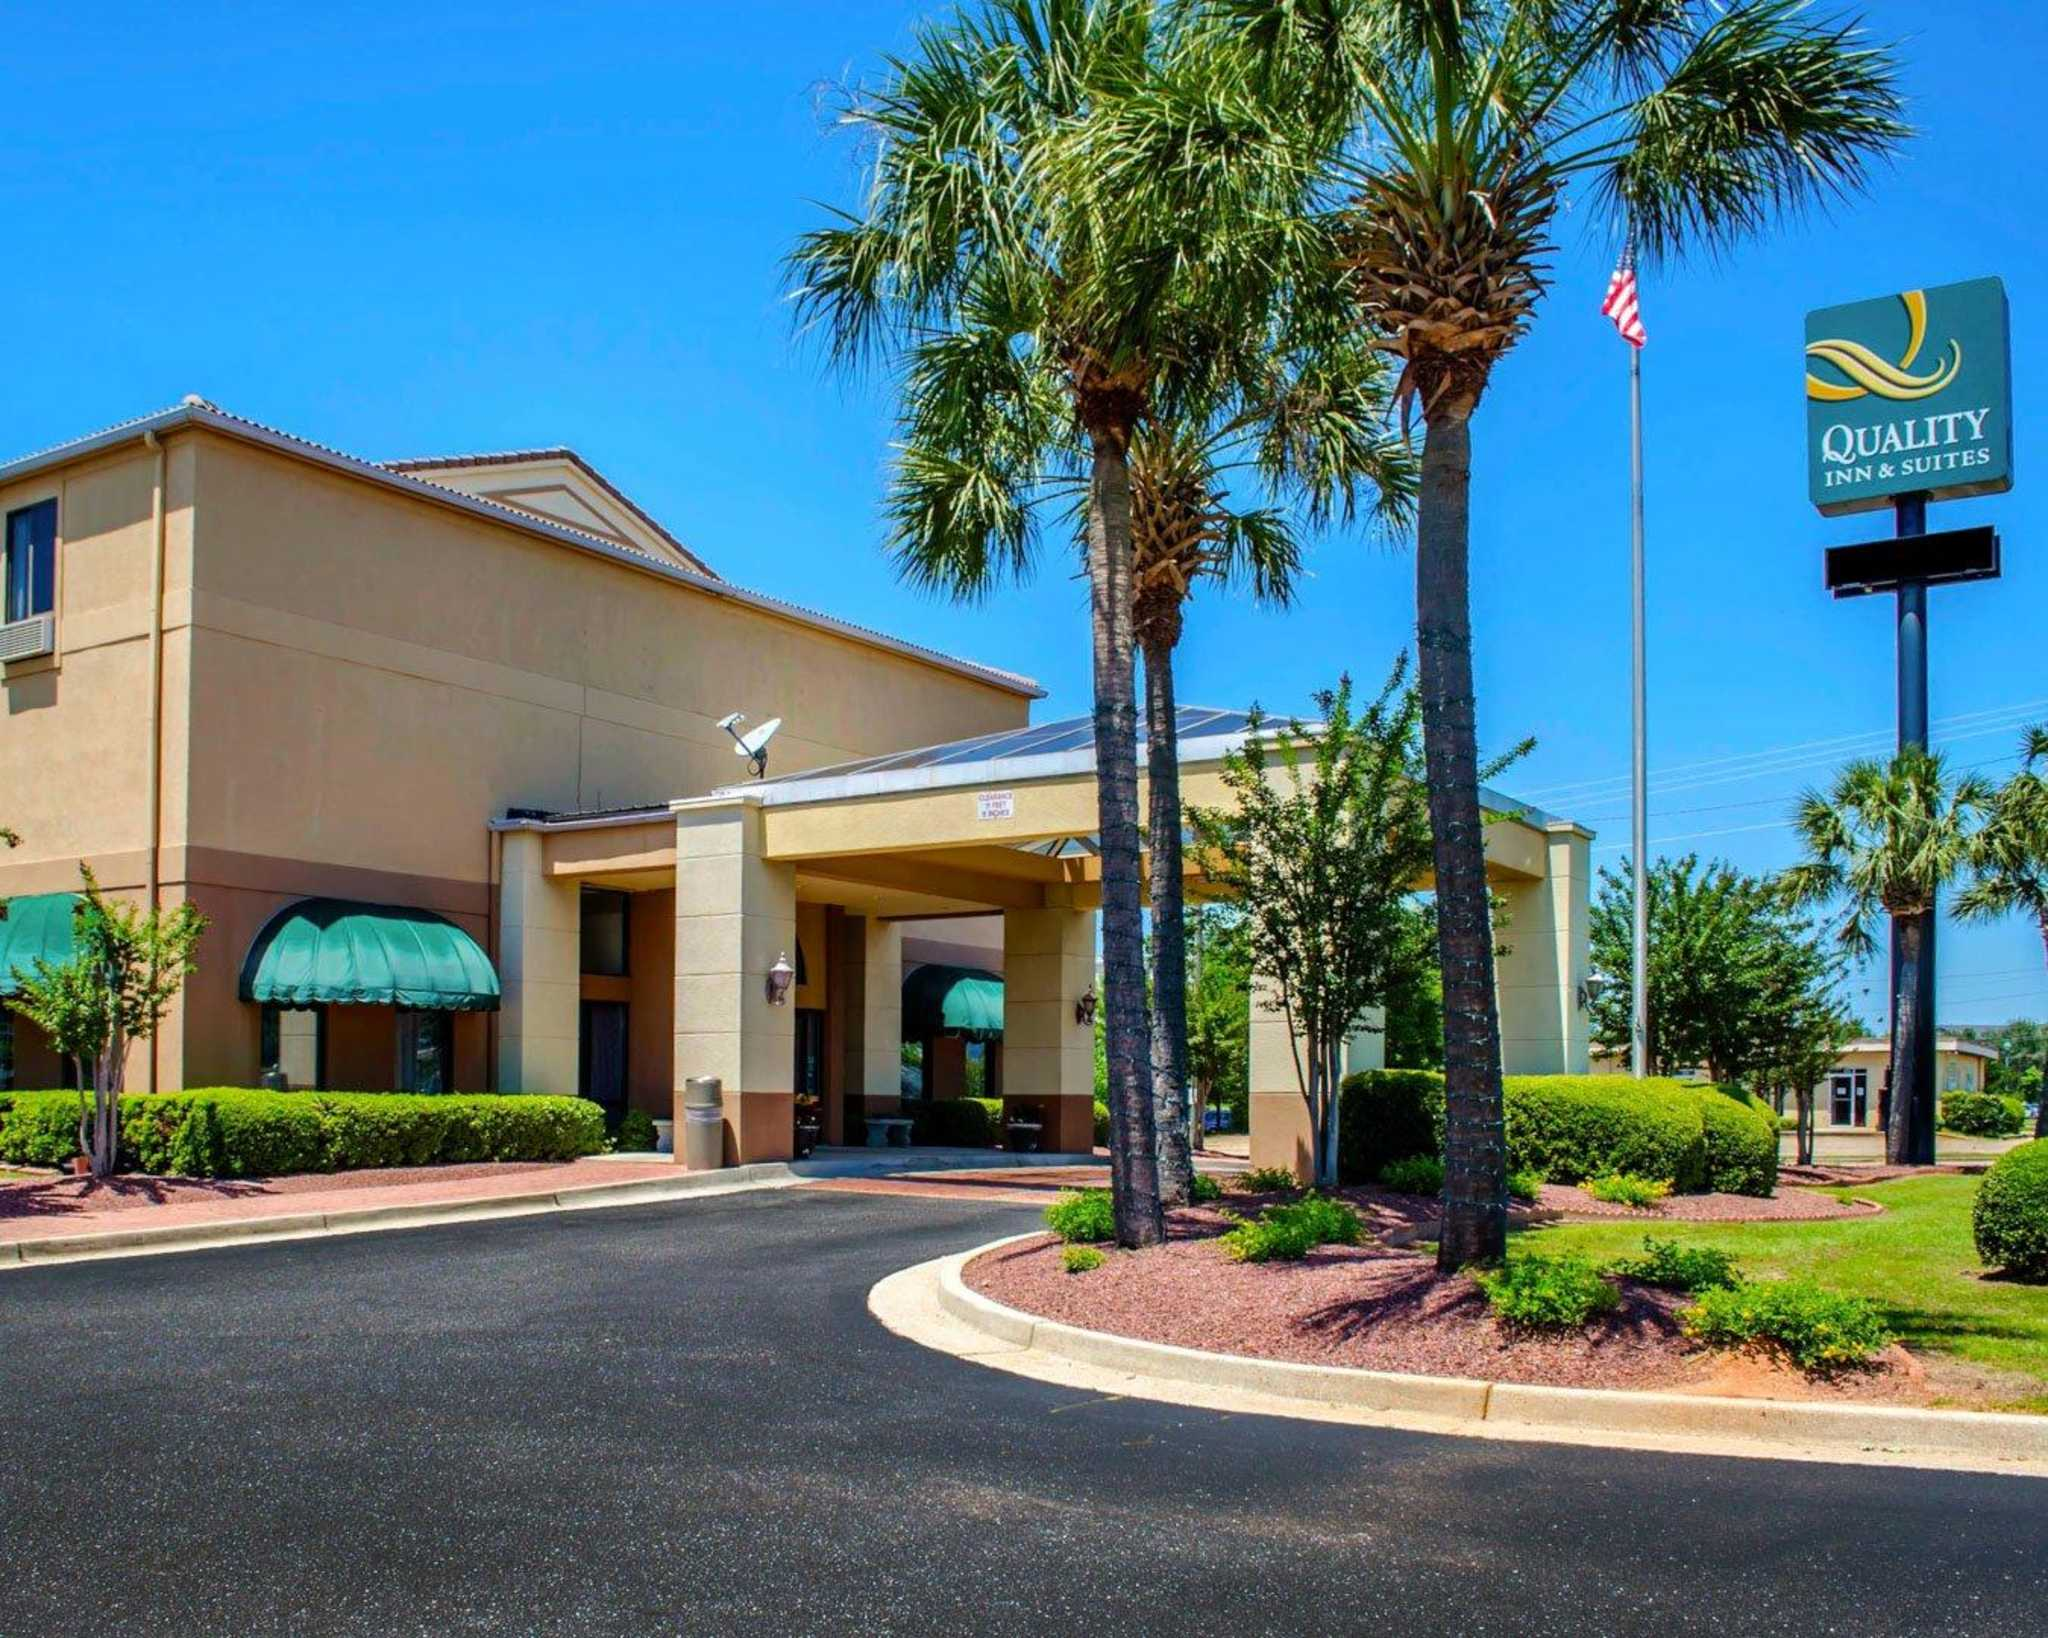 Quality Inn & Suites at Airport Blvd I-65 image 1